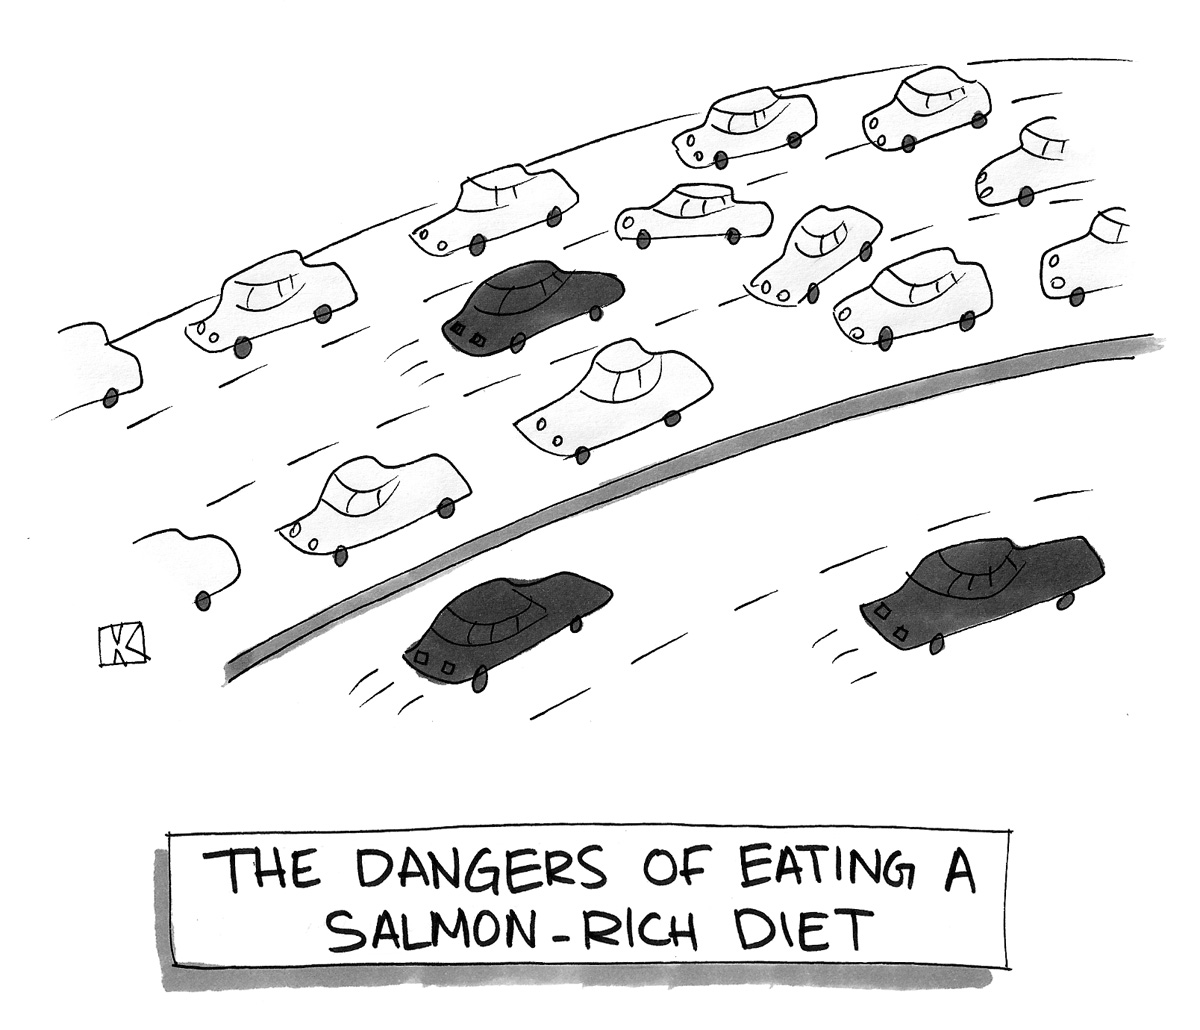 The dangers of eating a salmon-rich diet.